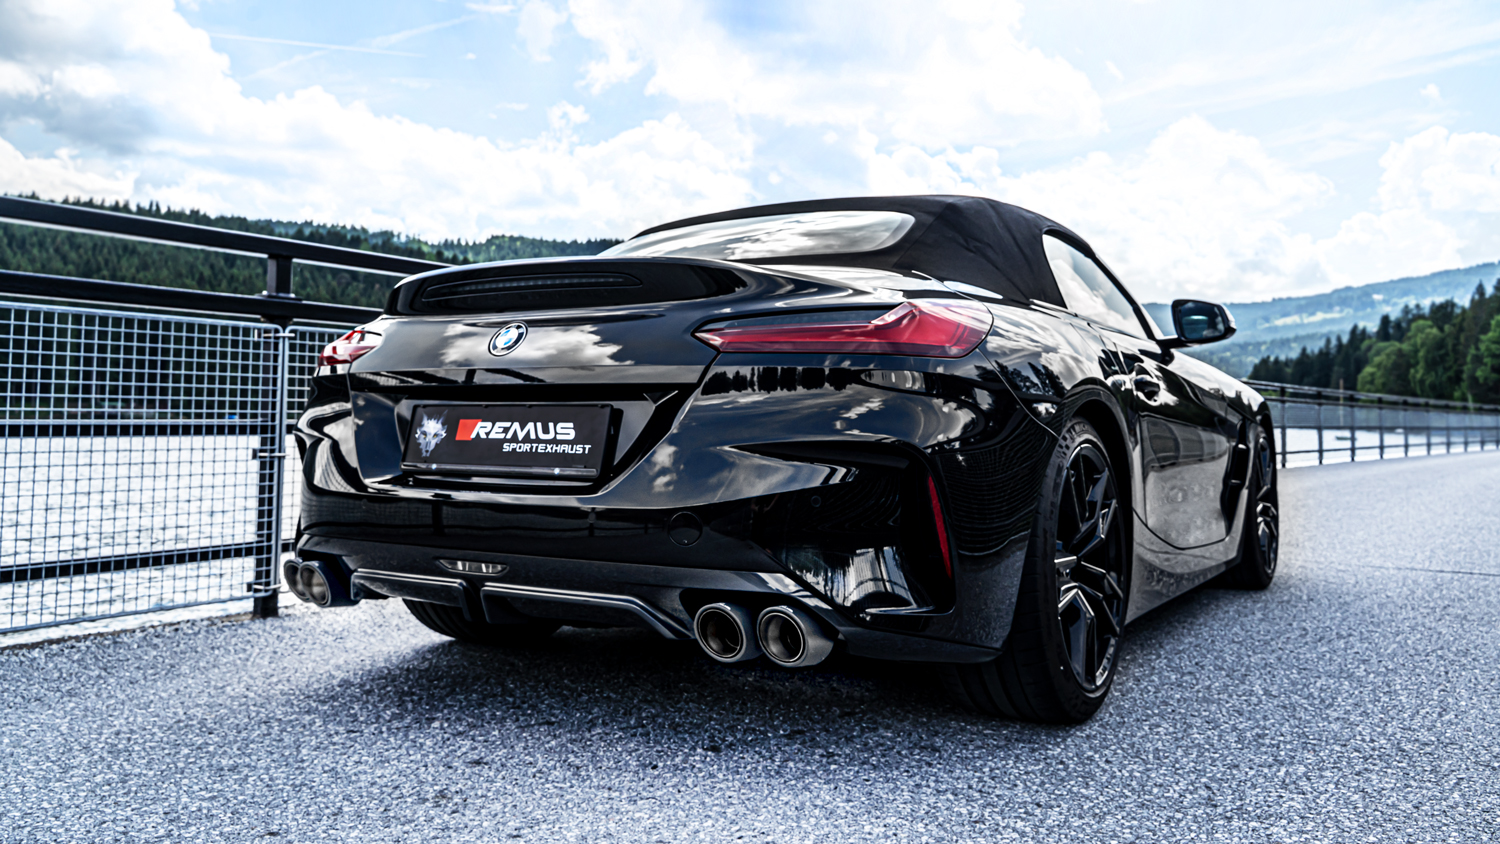 Exhaustssystems Remus Product Information 18 2019 Bmw Z4 M40i Remus